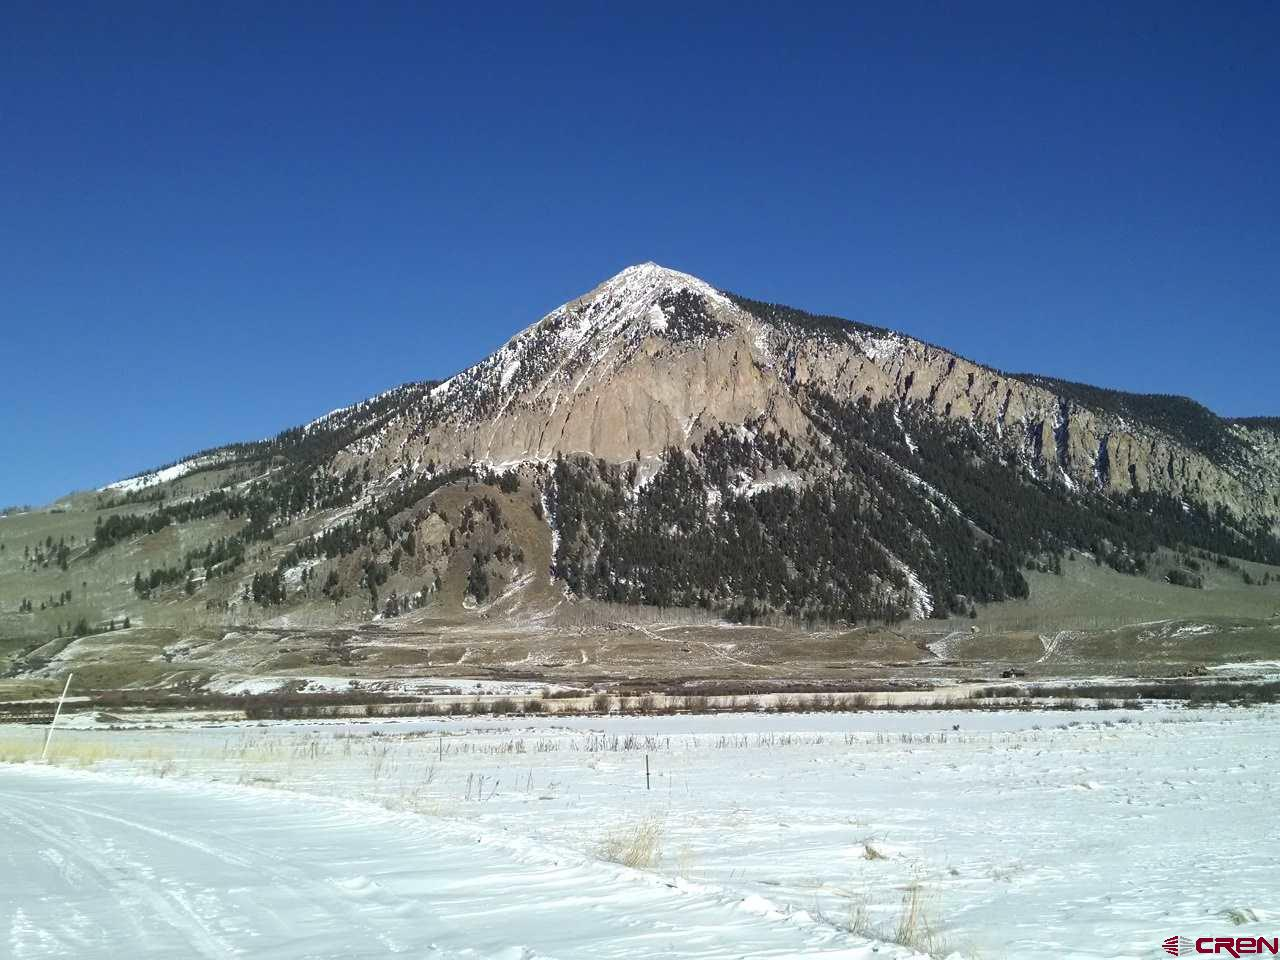 MLS# 757733 - 10 - 341 Mccormick Ranch Road, Crested Butte, CO 81224